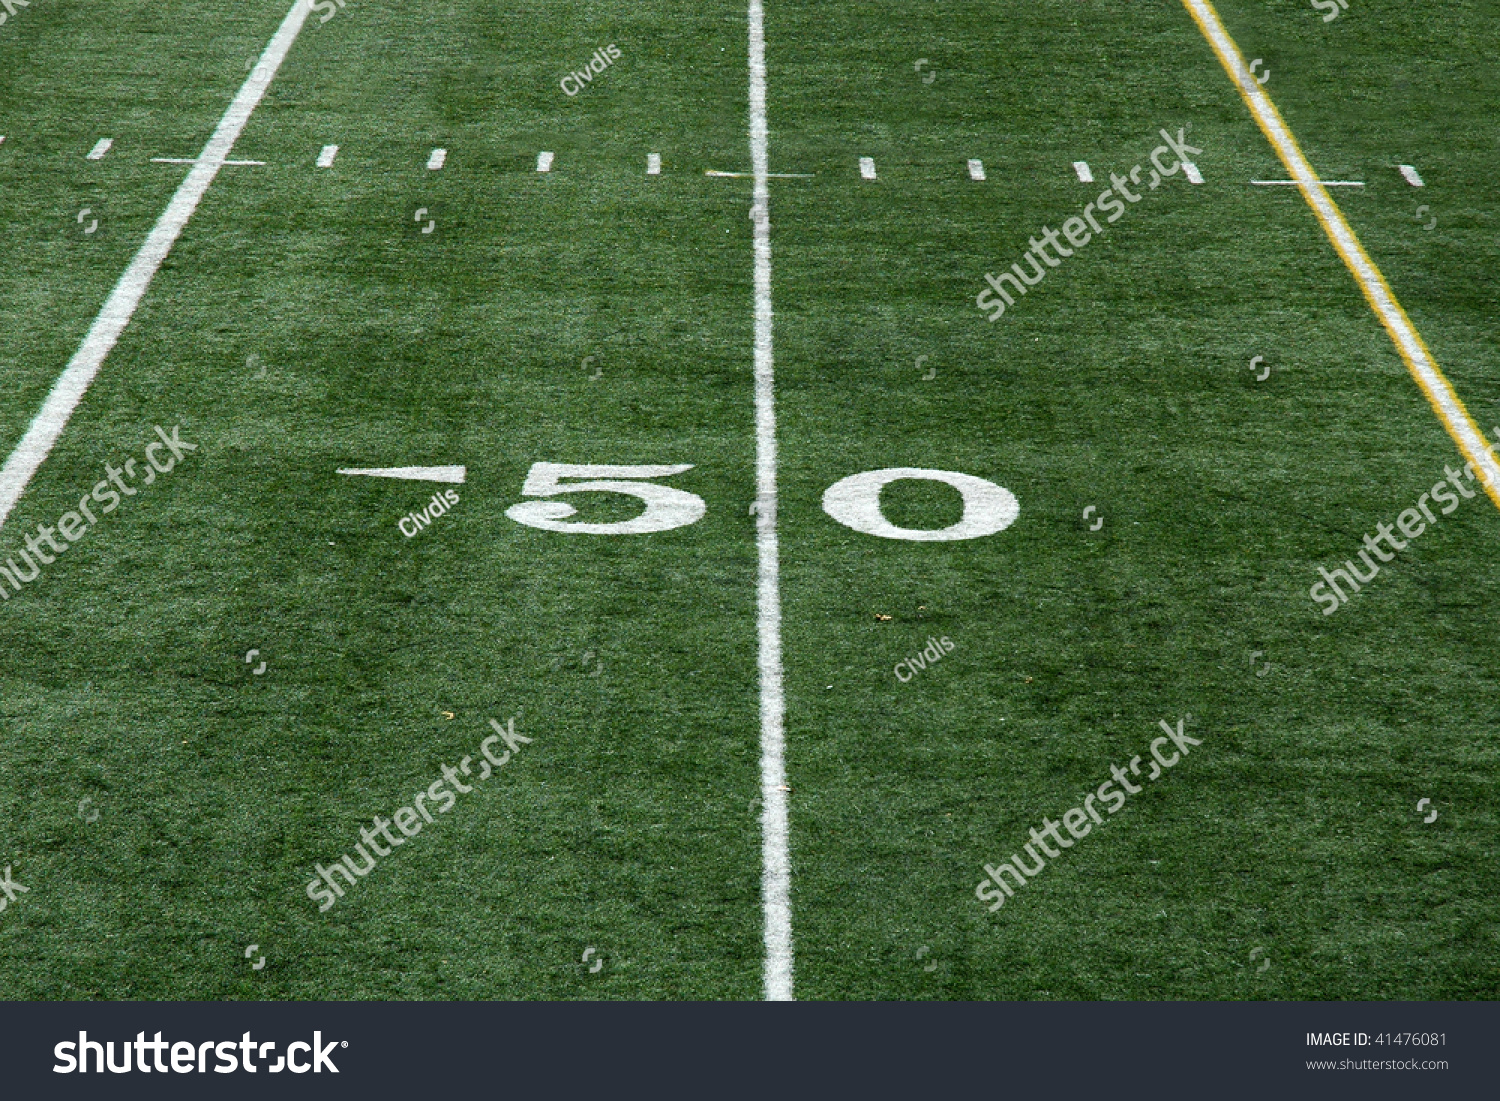 Backyard Turf Football Field : View Of Fifty Yard Line On An Artificial Turf Football Field Stock